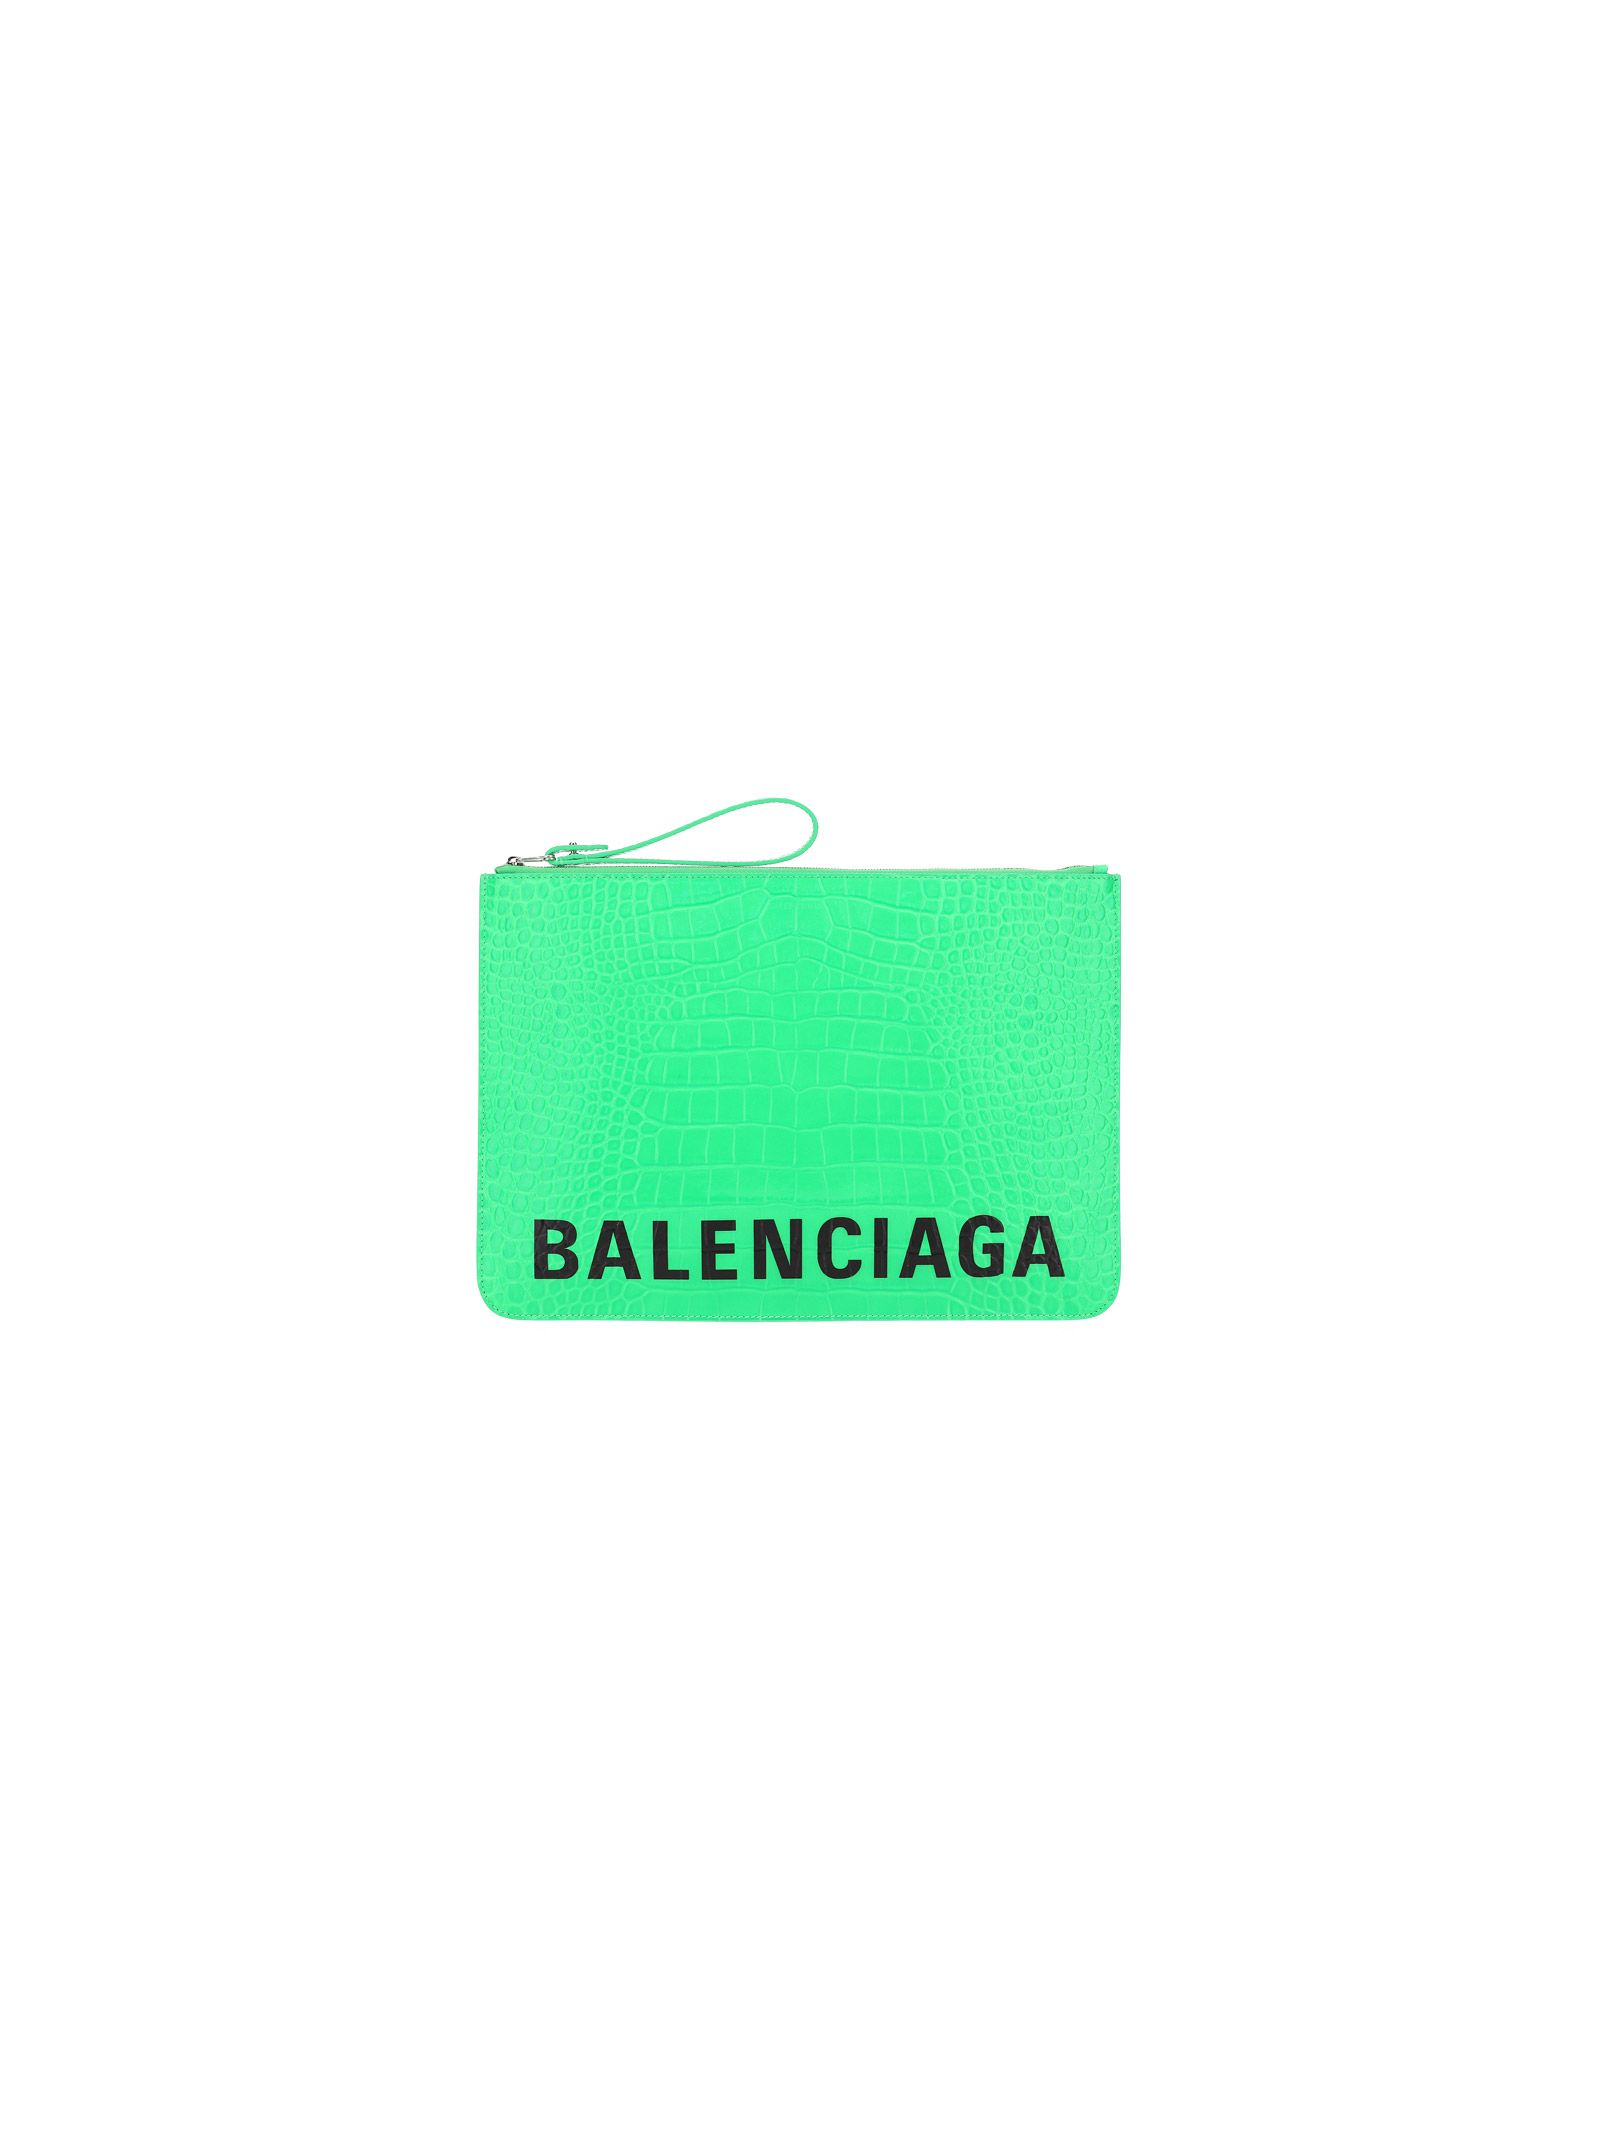 Balenciaga BALENCIAGA WOMEN'S GREEN LEATHER POUCH